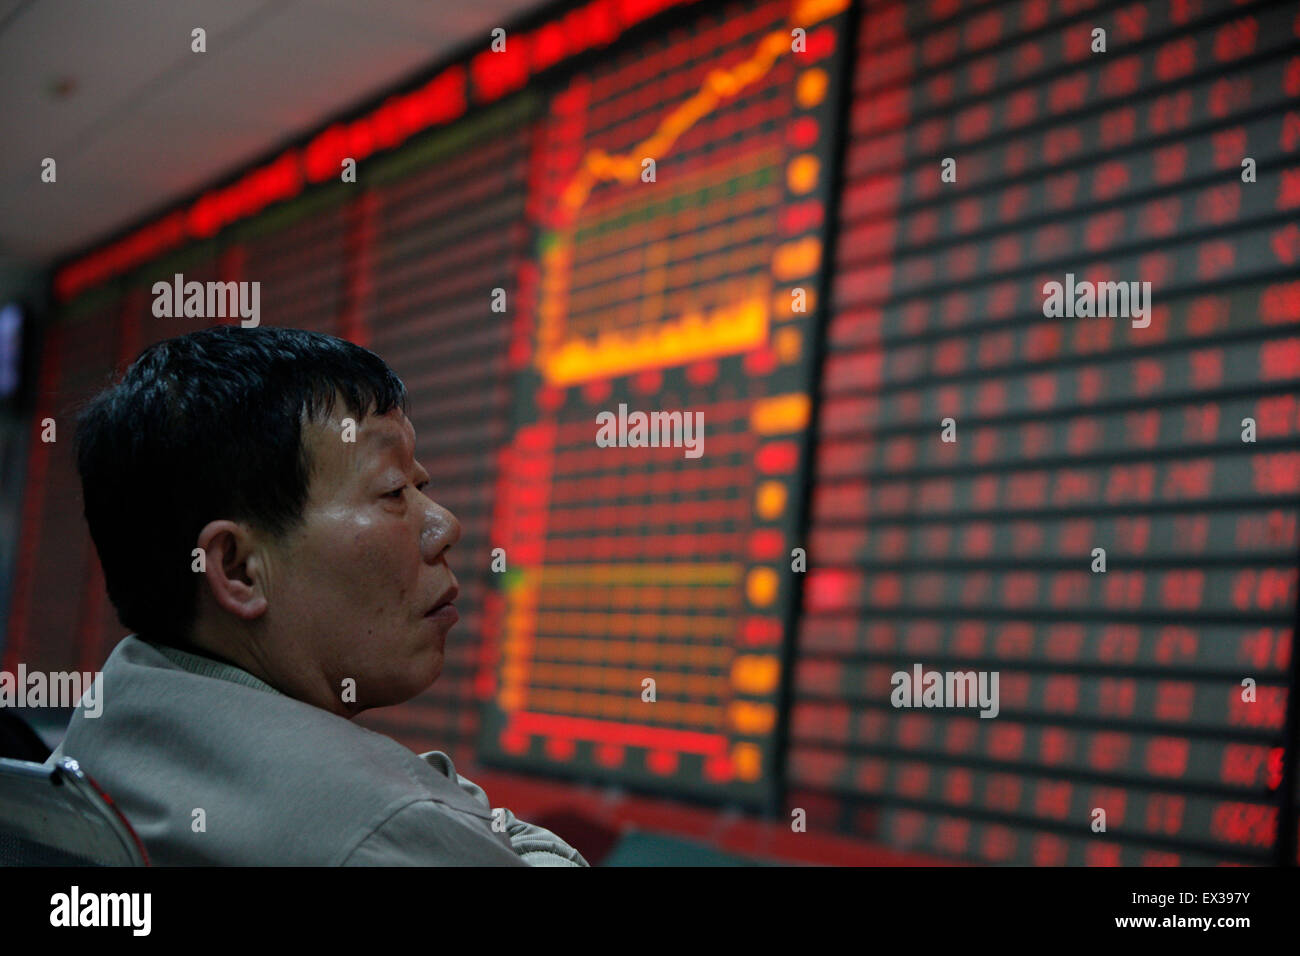 An investor gestures in front of an electronic board with stock information at a brokerage house in Huaibei, Anhui - Stock Image